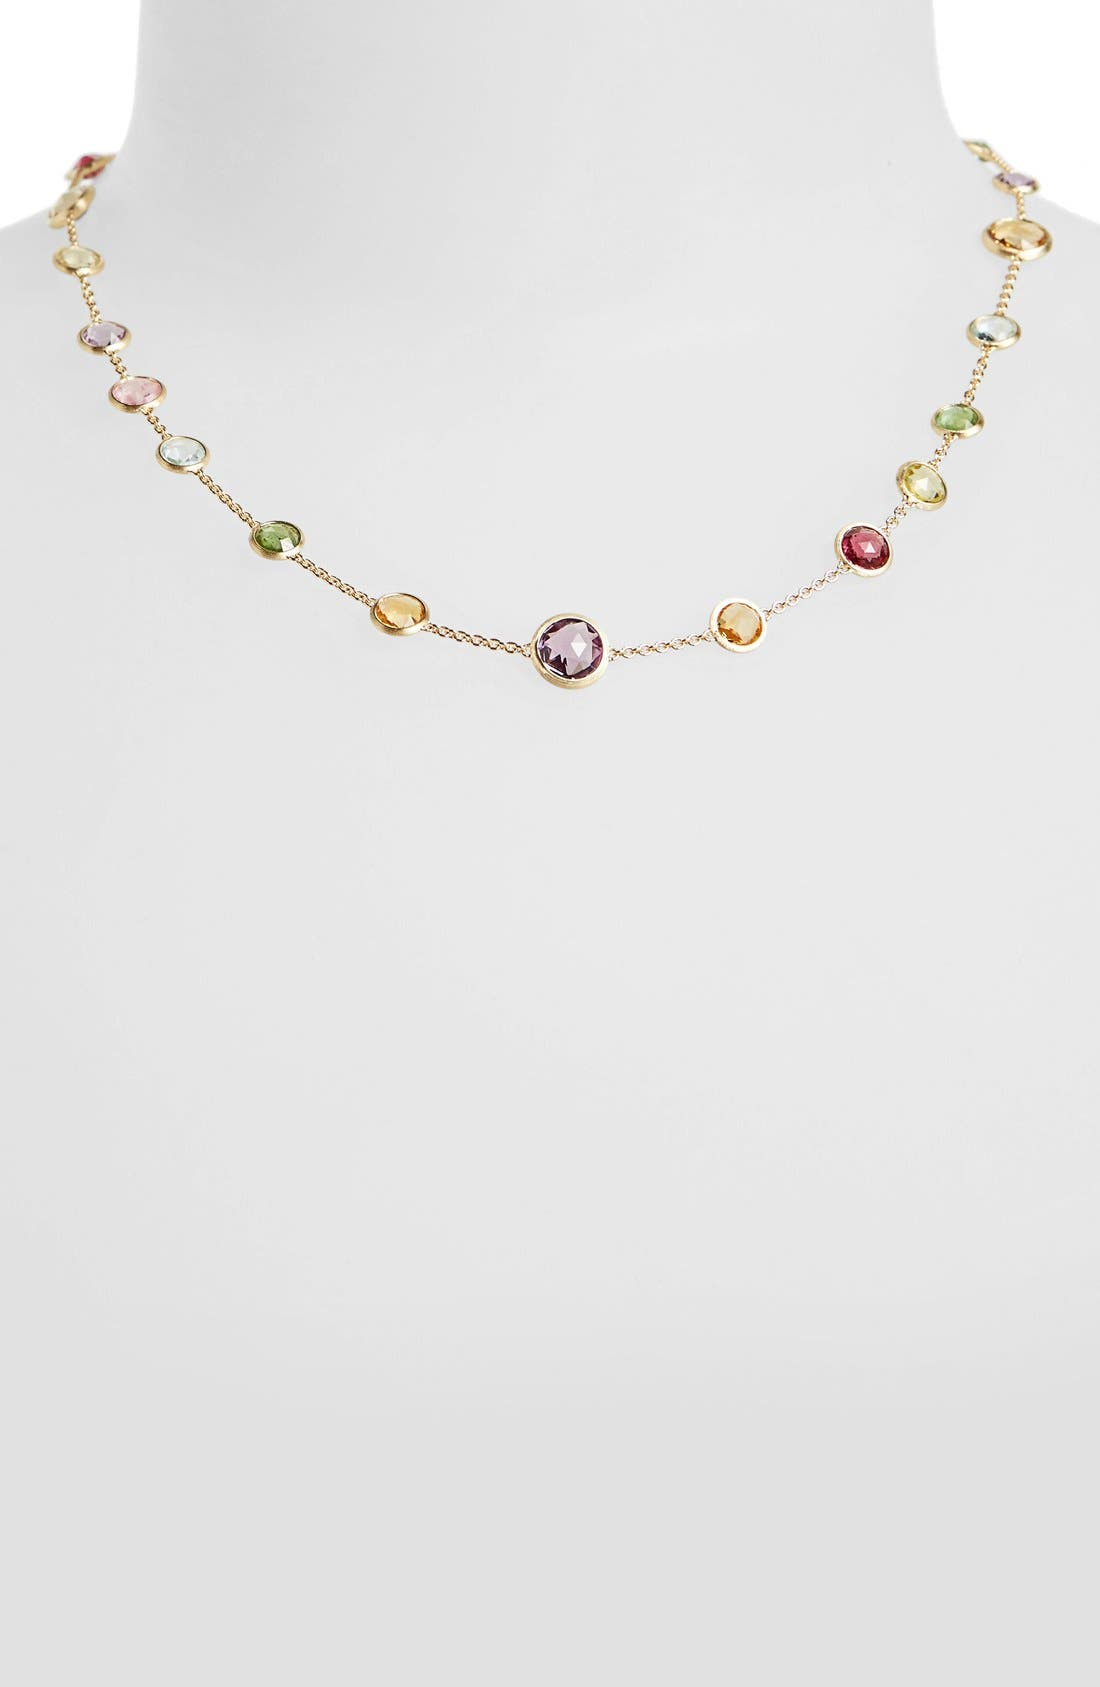 Marco Bicego 'Mini Jaipur' Station Necklace